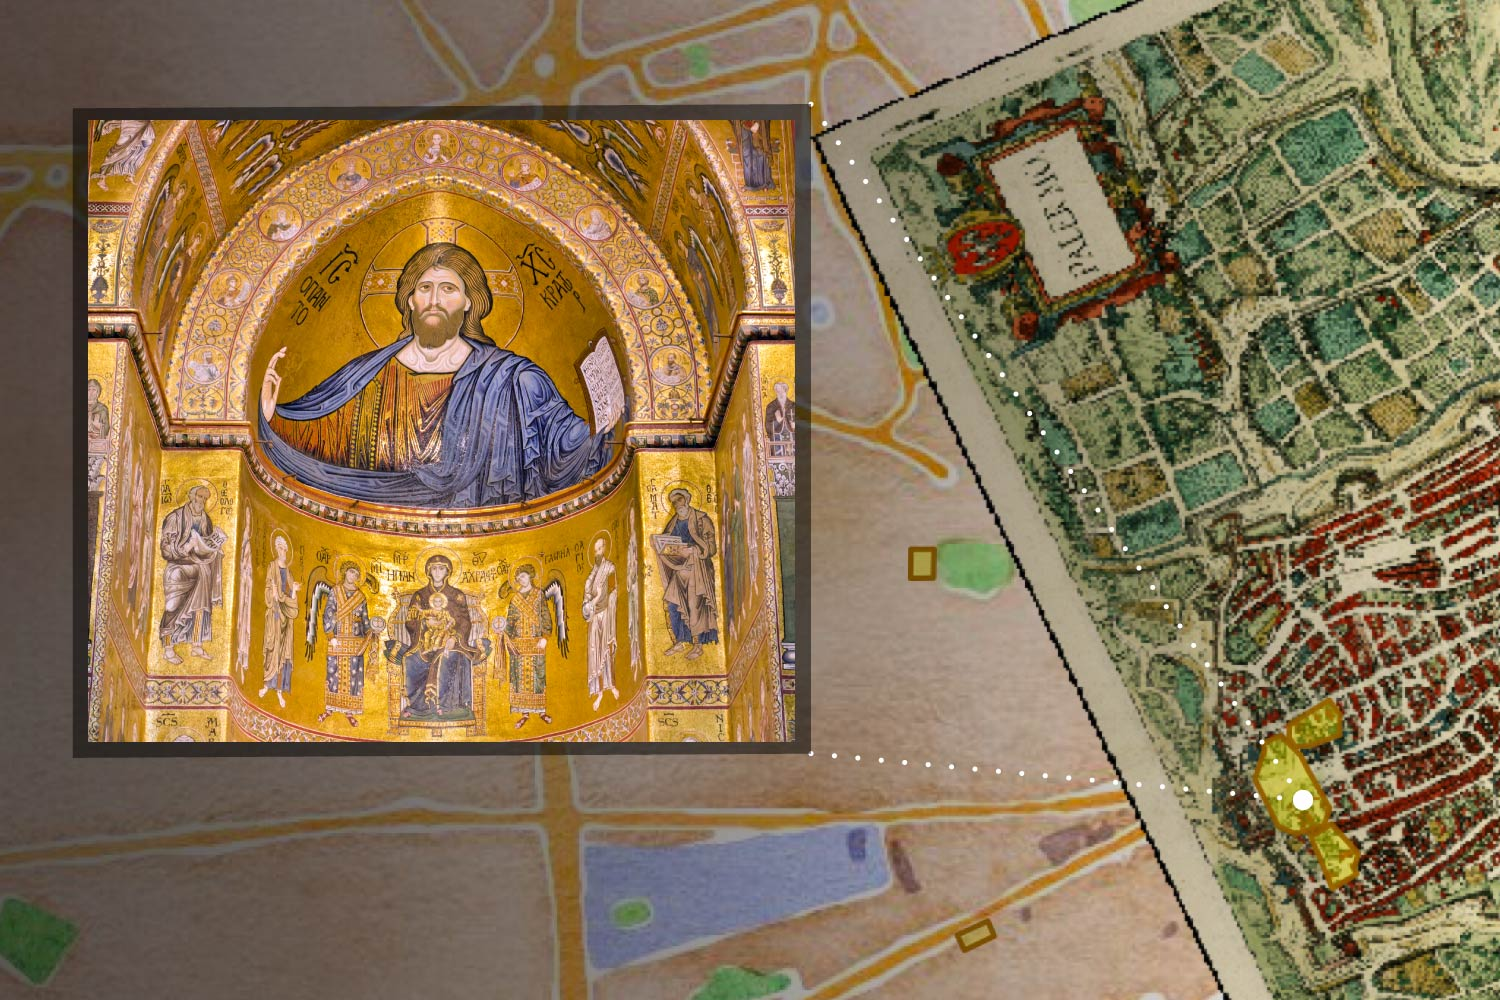 This rendering of a Neatline element displays an inner mosaic in the Cappella Palatina in Palermo.